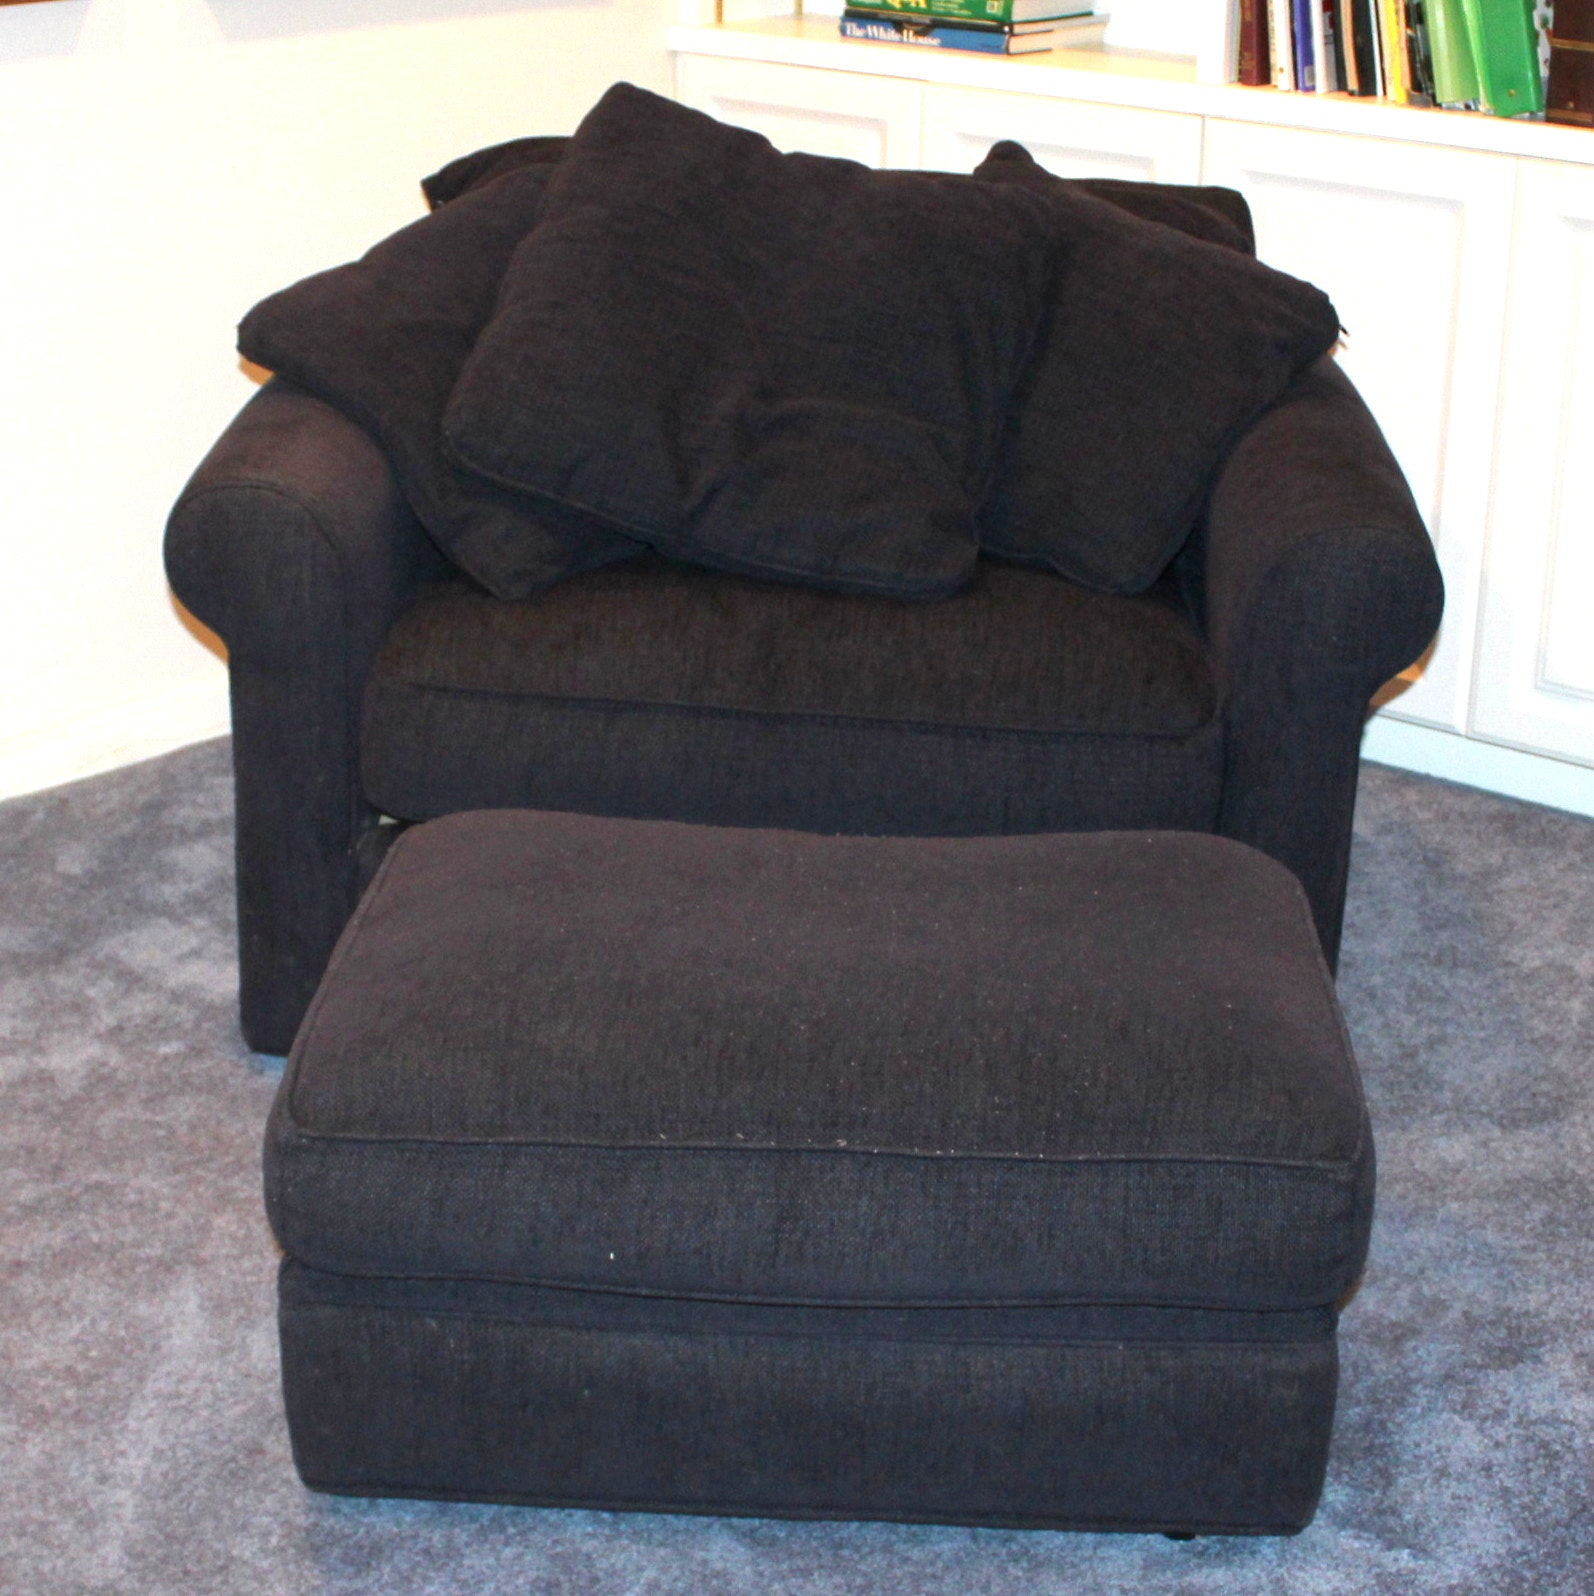 Contemporary Chair-and-a-Half With Ottoman